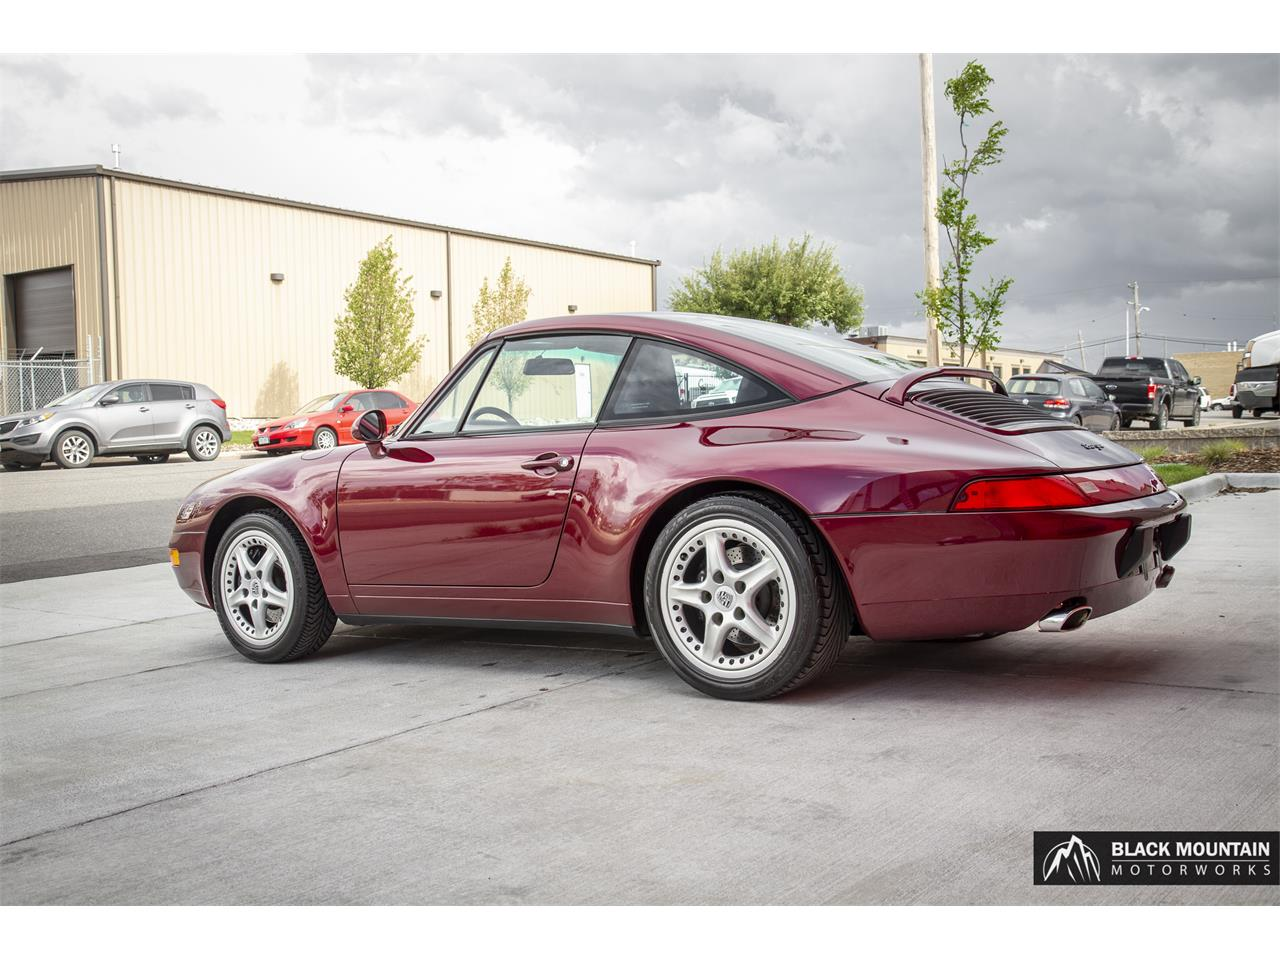 Large Picture of '97 Porsche 911 Carrera located in Denver Colorado Offered by a Private Seller - QN1Z